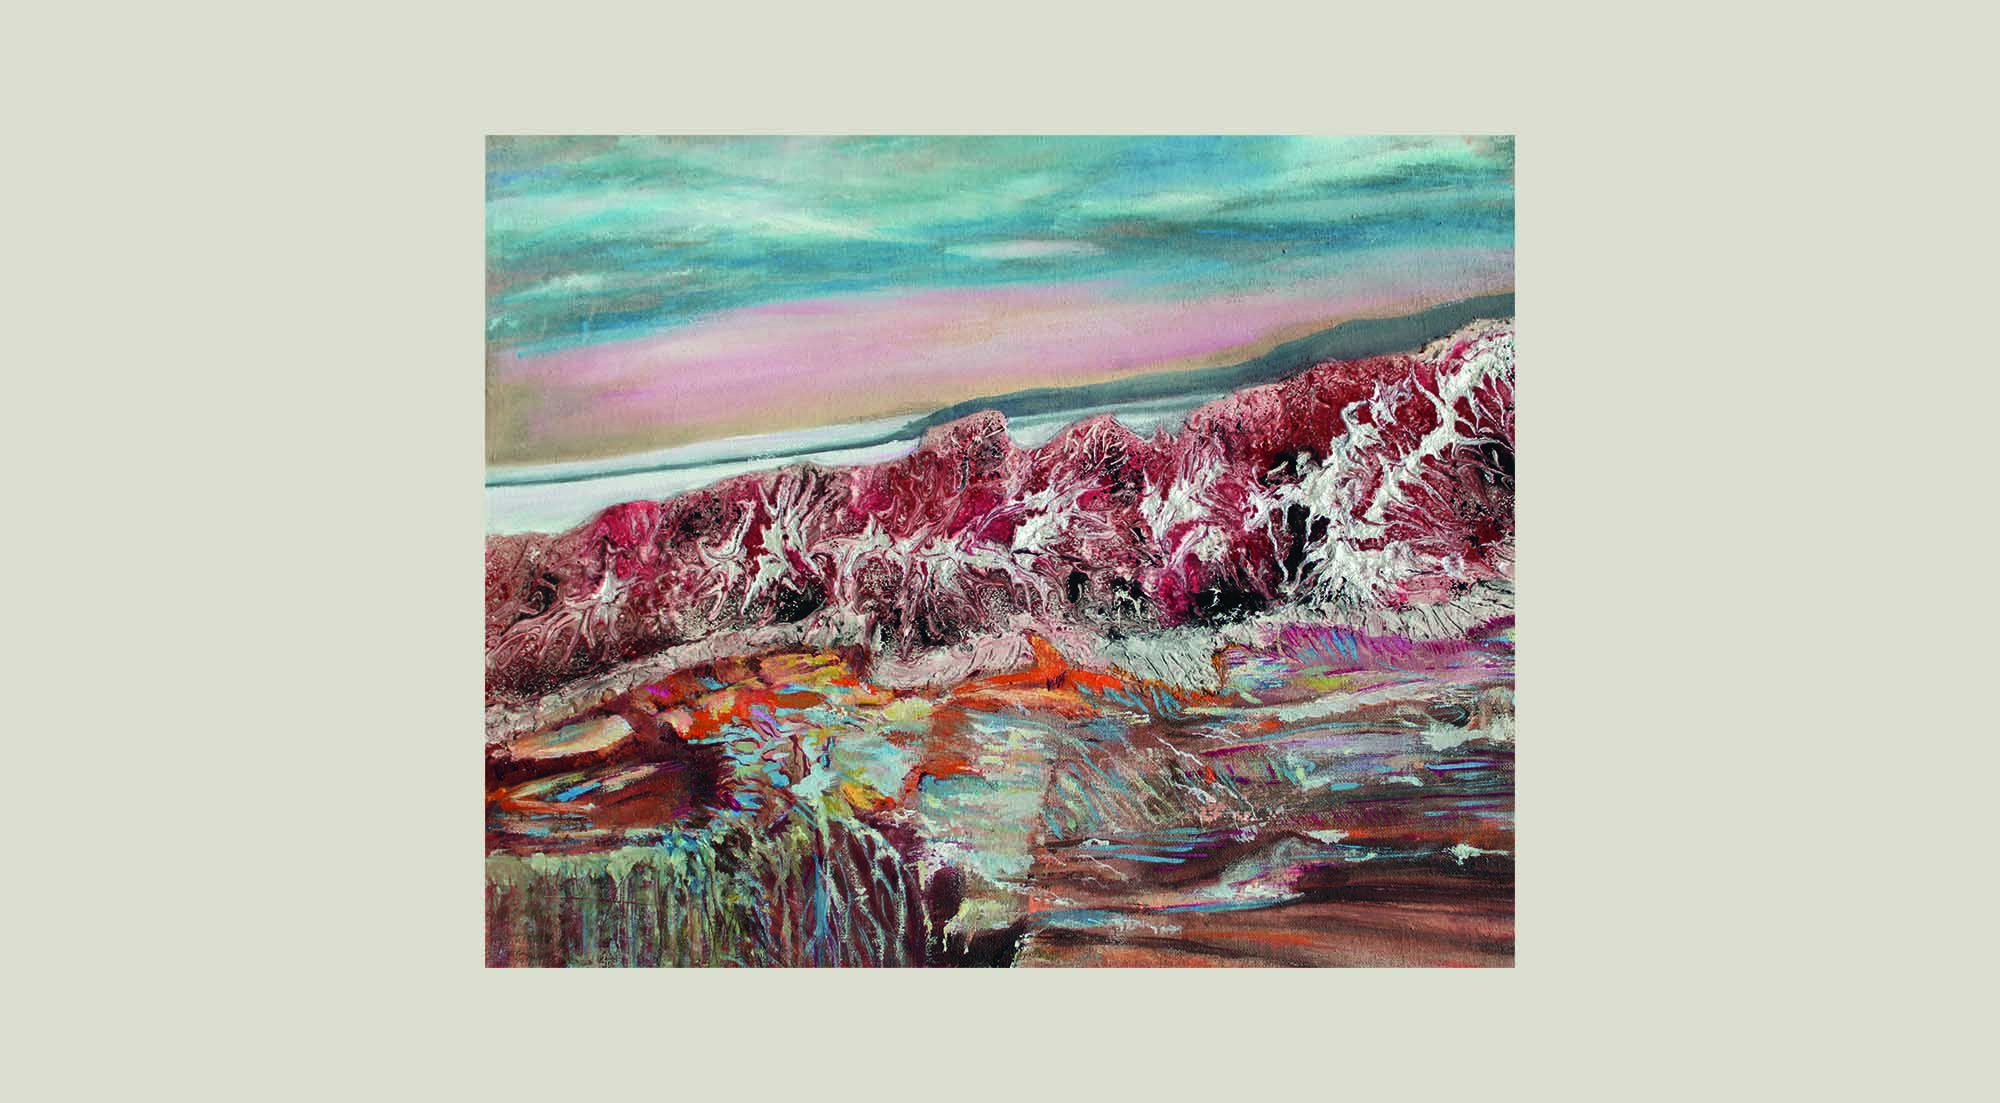 textured red and white plaster of paris, oil and acrylic ink on canvas